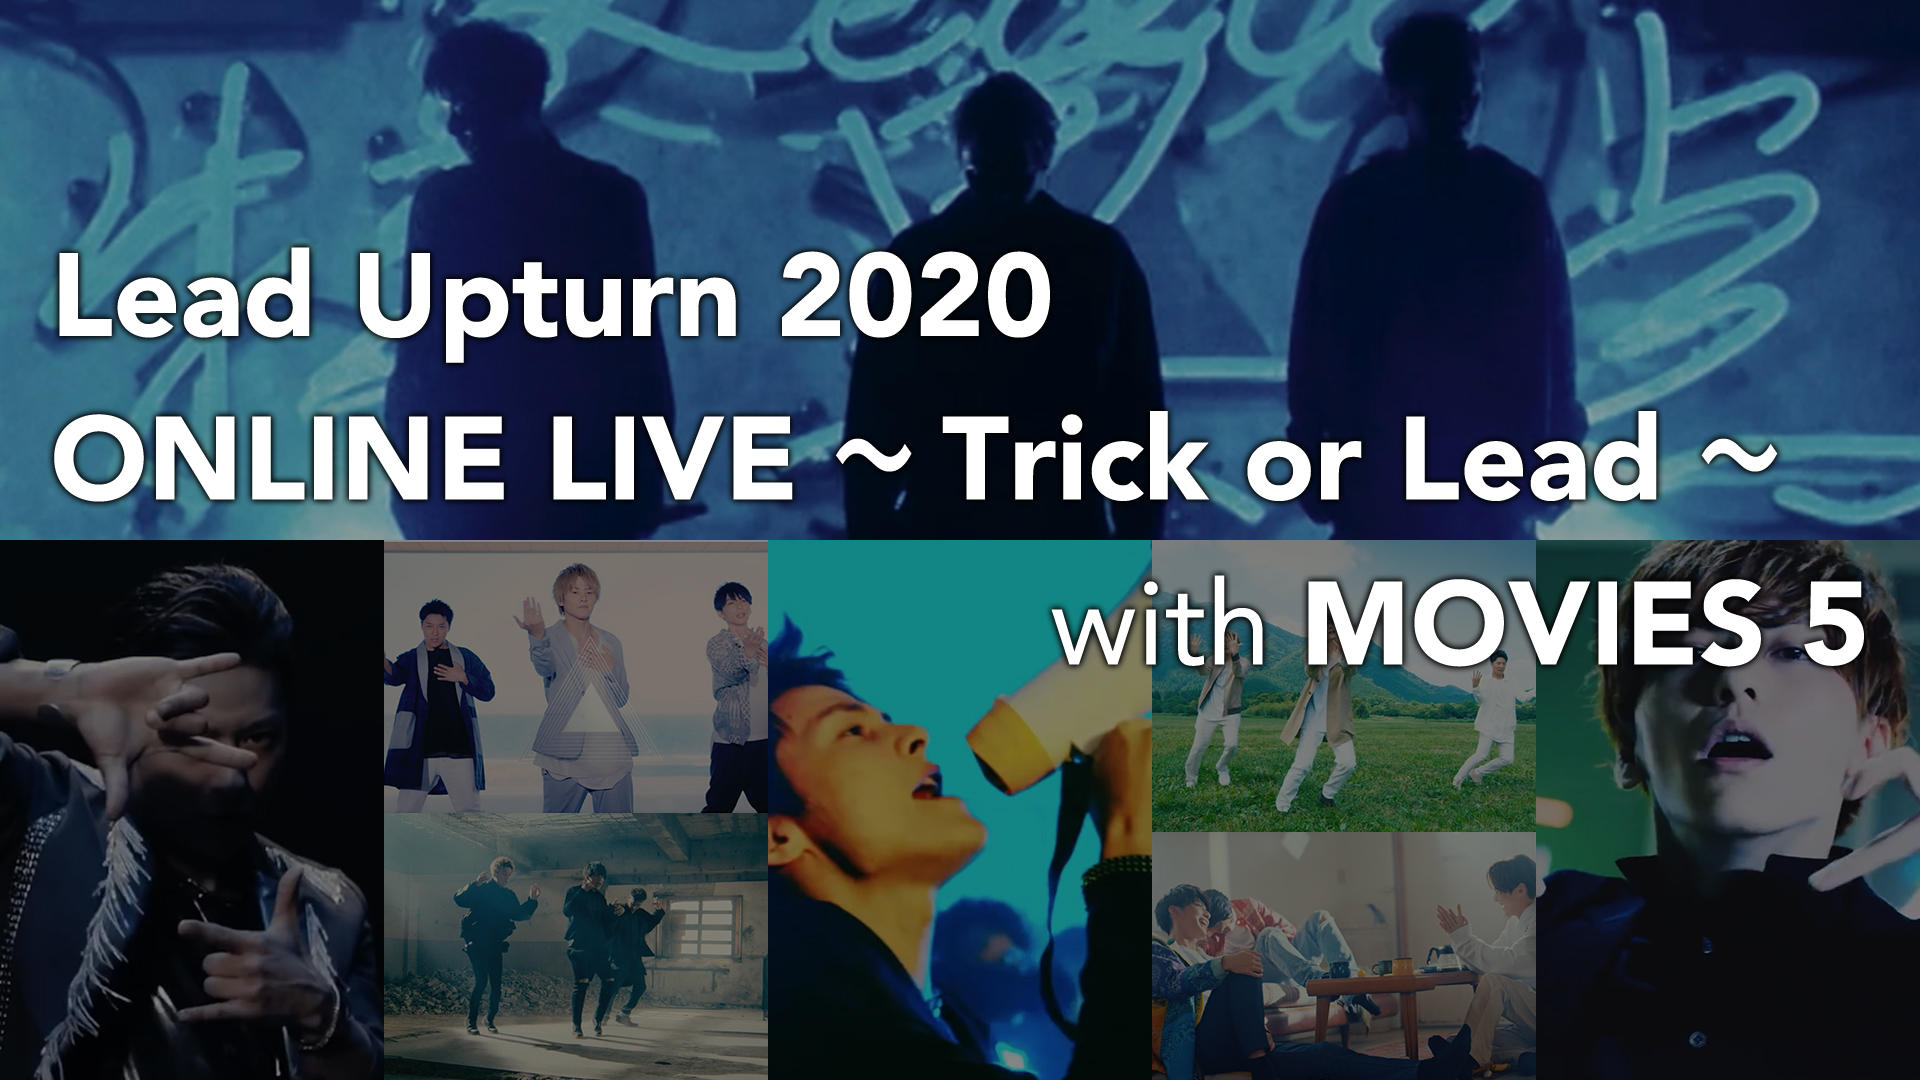 「Lead Upturn 2020 ONLINE LIVE ~Trick or Lead~」with「MOVIES 5」トレーラー